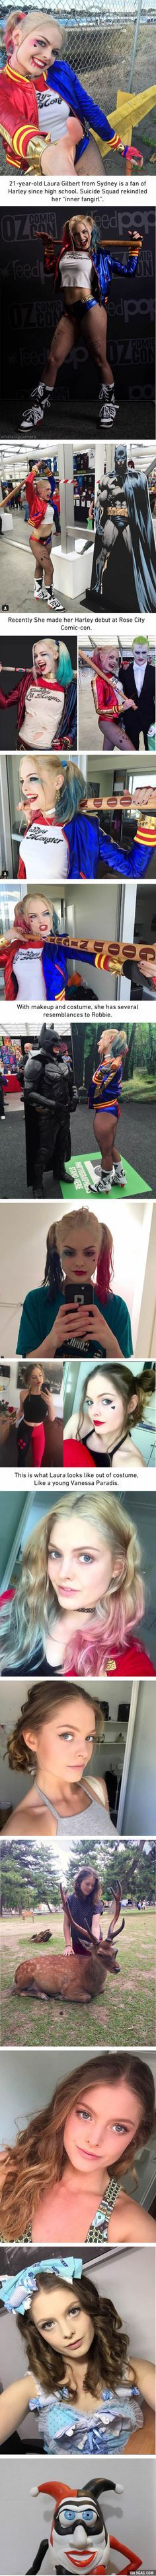 Among All The Harley Quinn Cosplays Out There, This Might Be The Closest One, at least to the Suicide Squad movie one Supergirl Injustice, Supergirl Serie, Supergirl Kara, Harley Quinn Disfraz, Joker Y Harley Quinn, Harley Quinn Cosplay, Cosplay Anime, Best Cosplay, Cosplay Girls